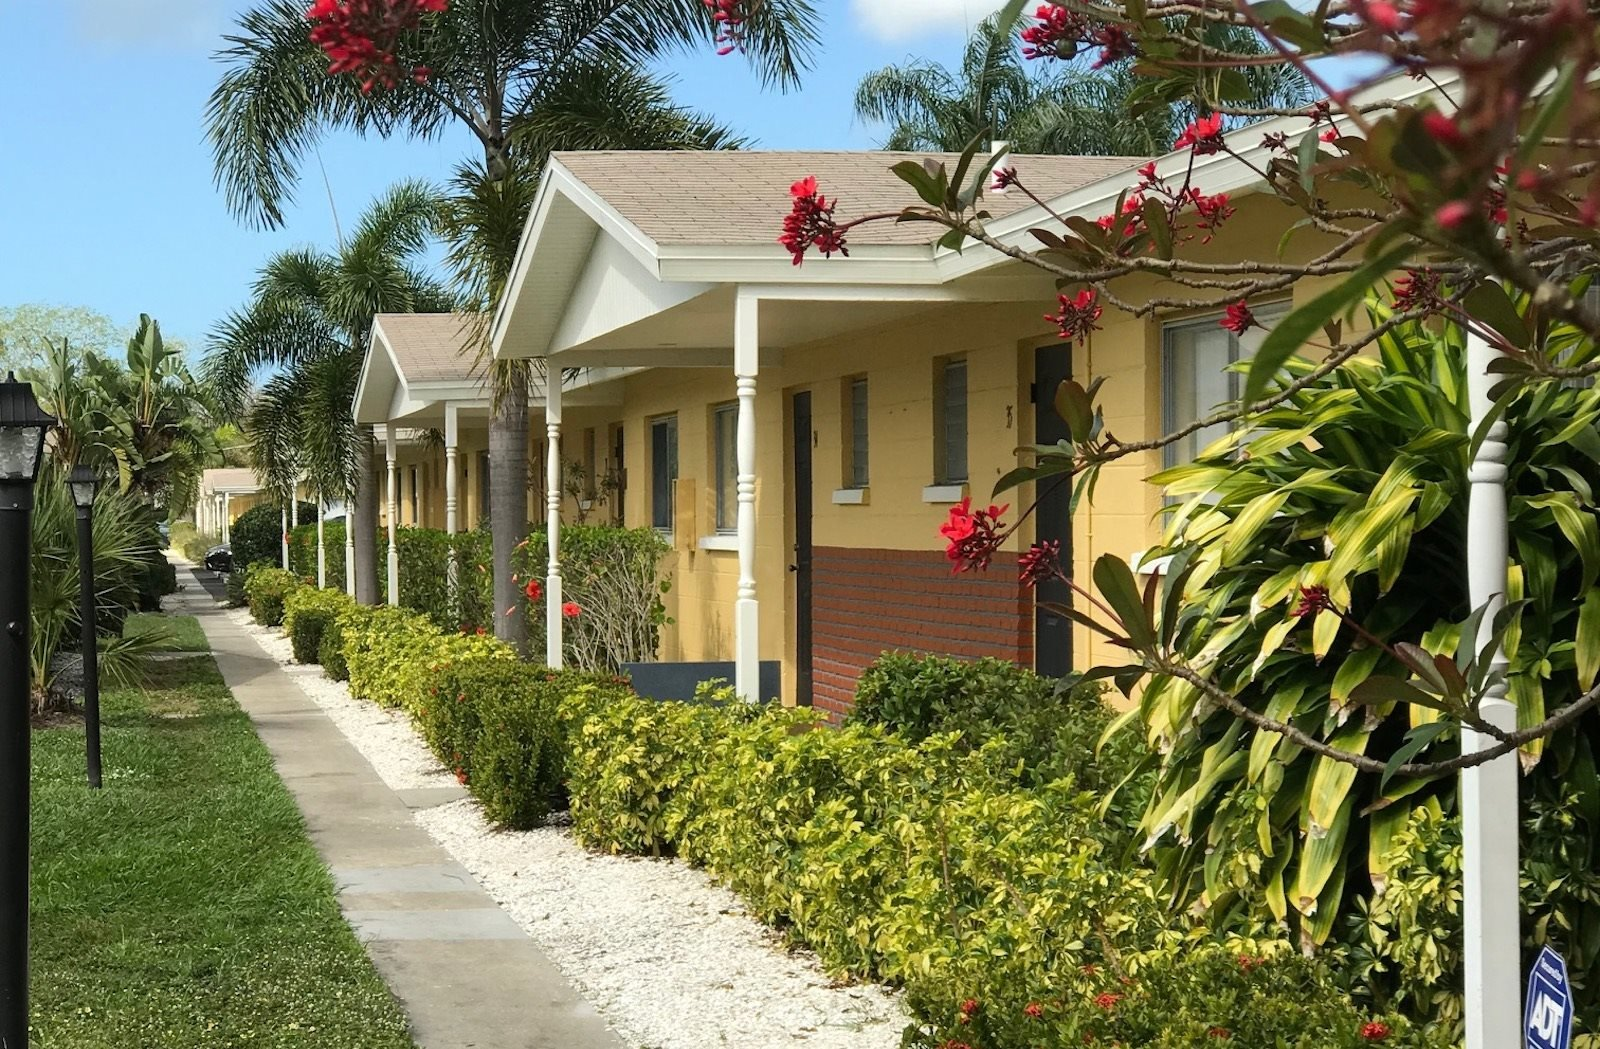 beautiful home exteriors with lush landscaping and neat sidewalks